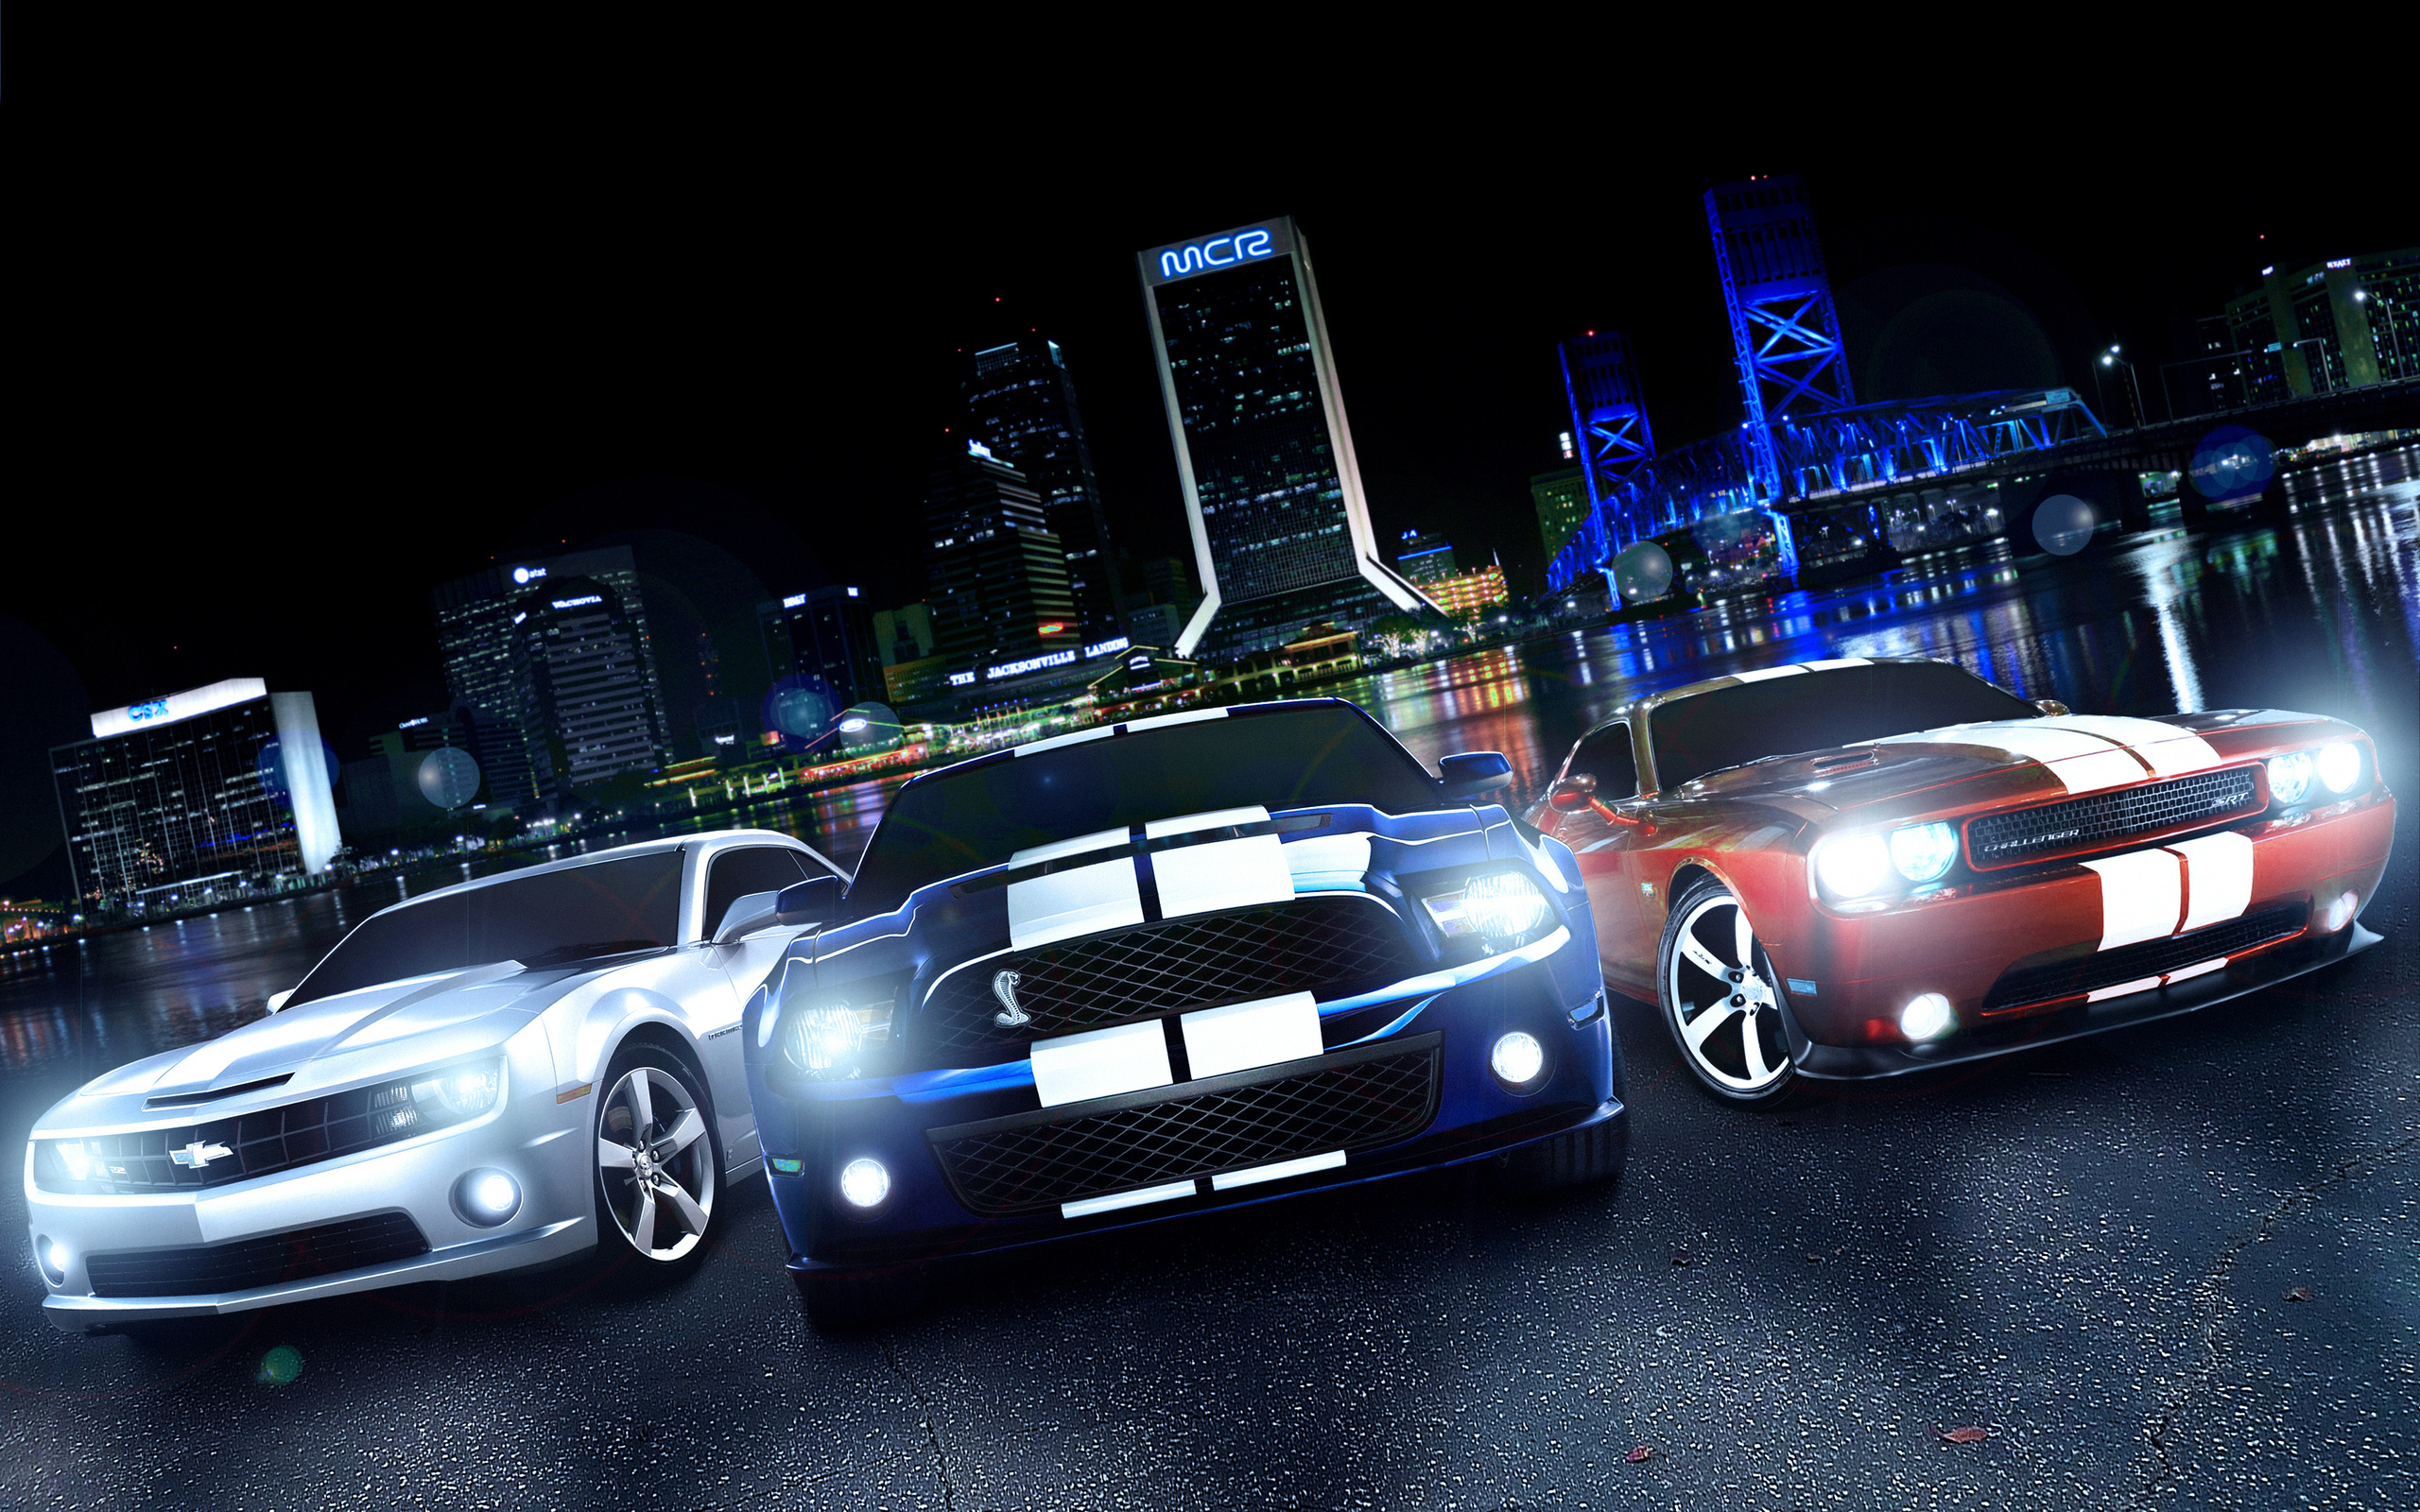 Cool Muscle Car Wallpapers Full Hd: Cool Muscle Cars Wallpaper